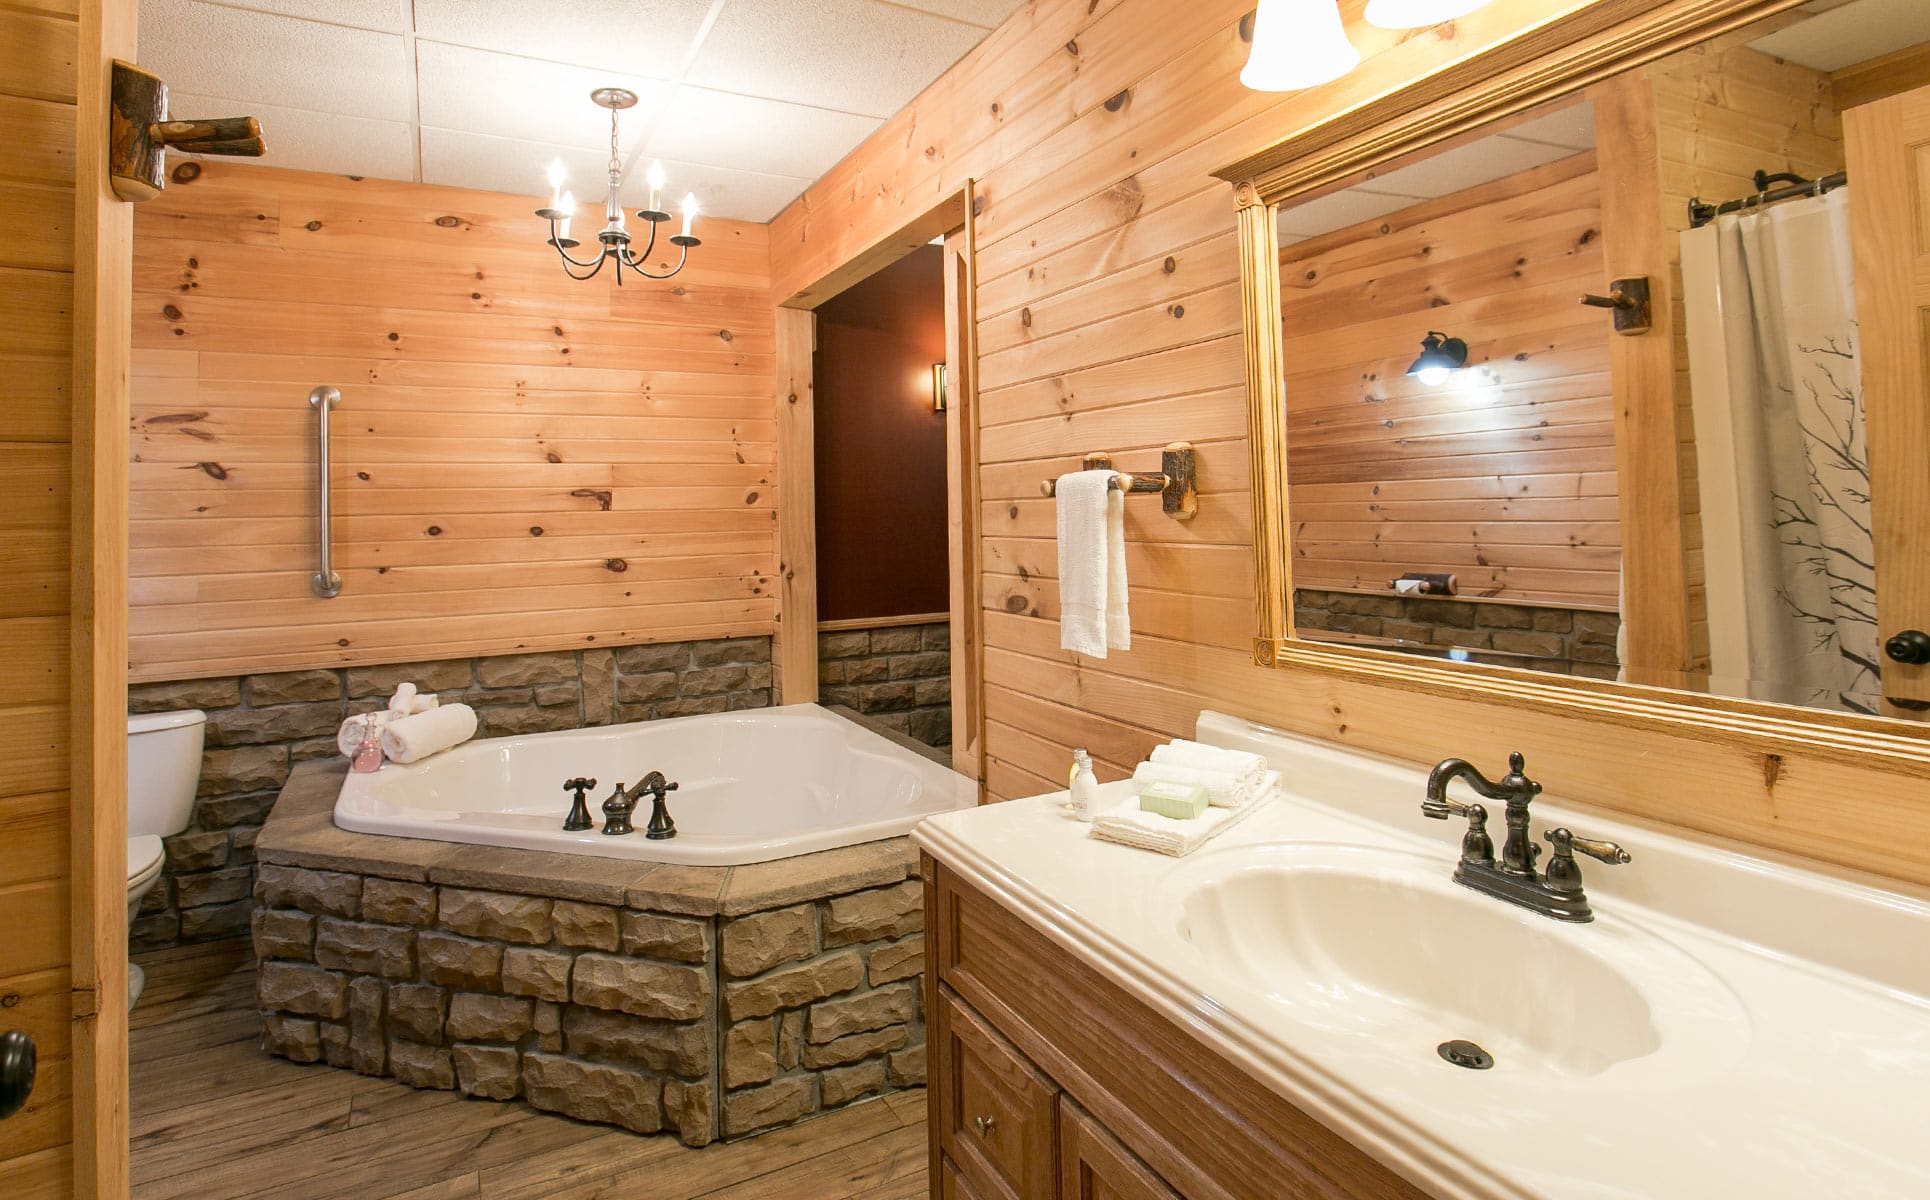 Bathroom with 2-person jetted tub